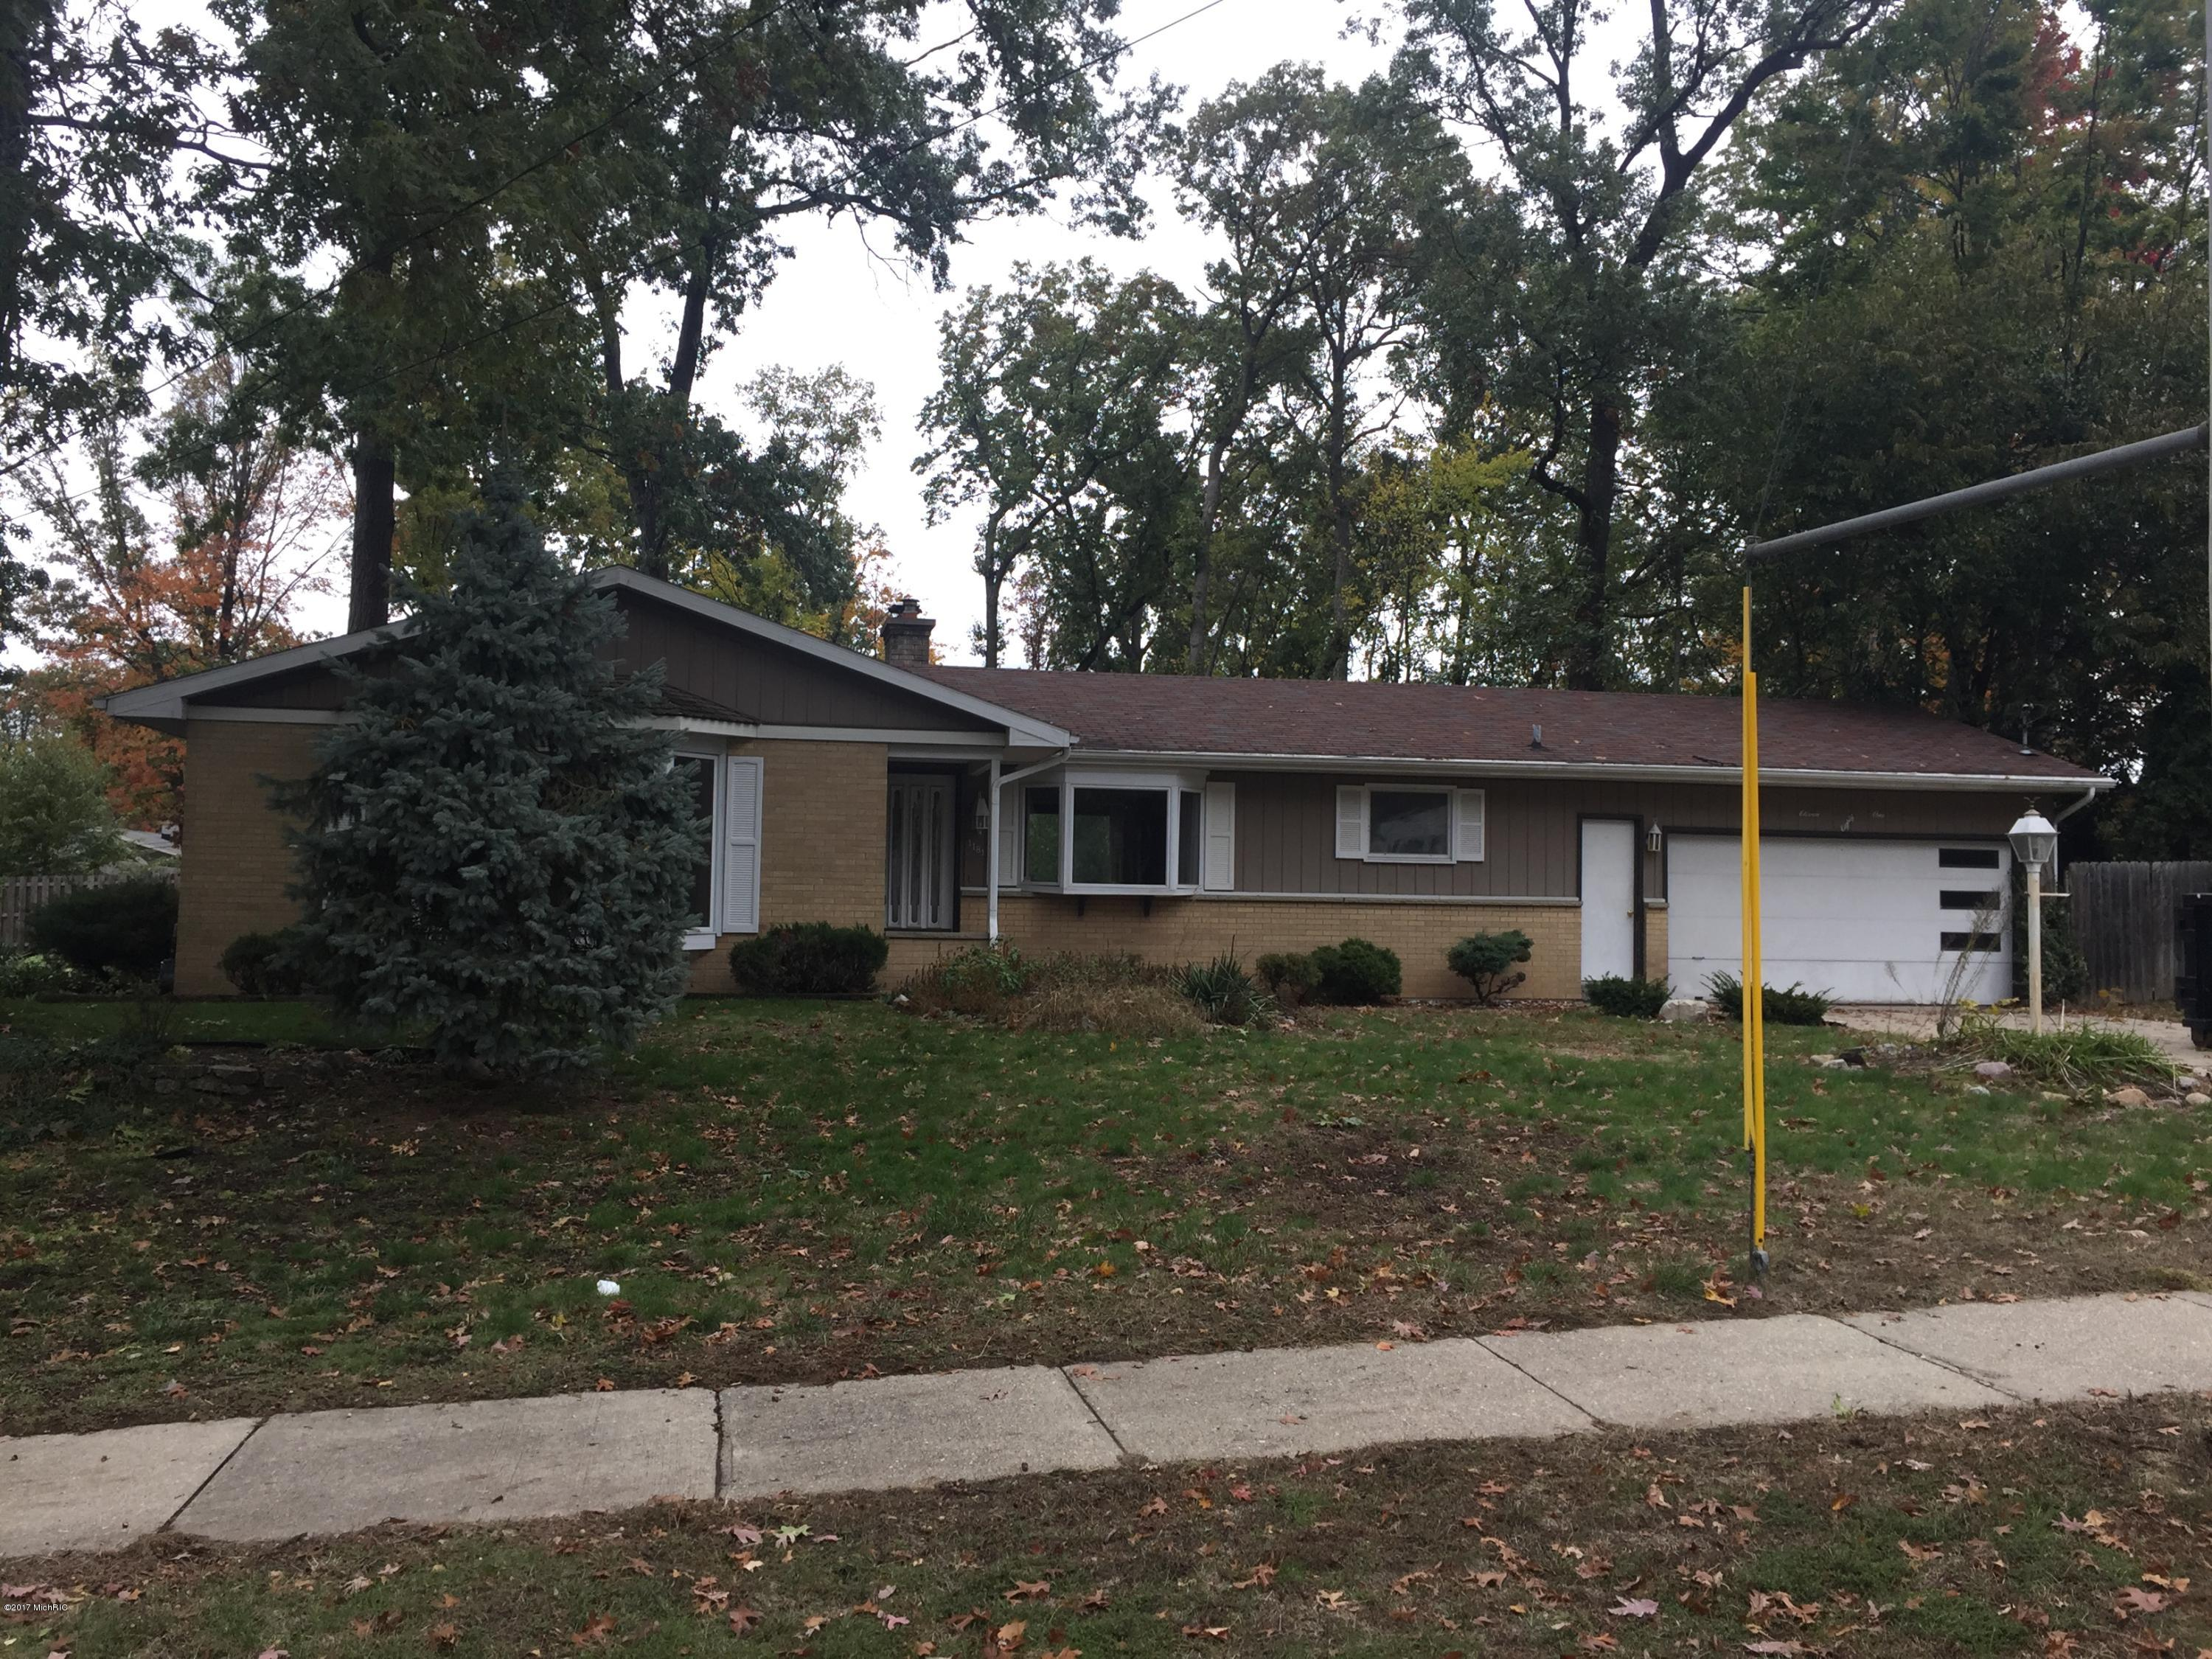 1181 48th Street SE, Kentwood, MI 49508